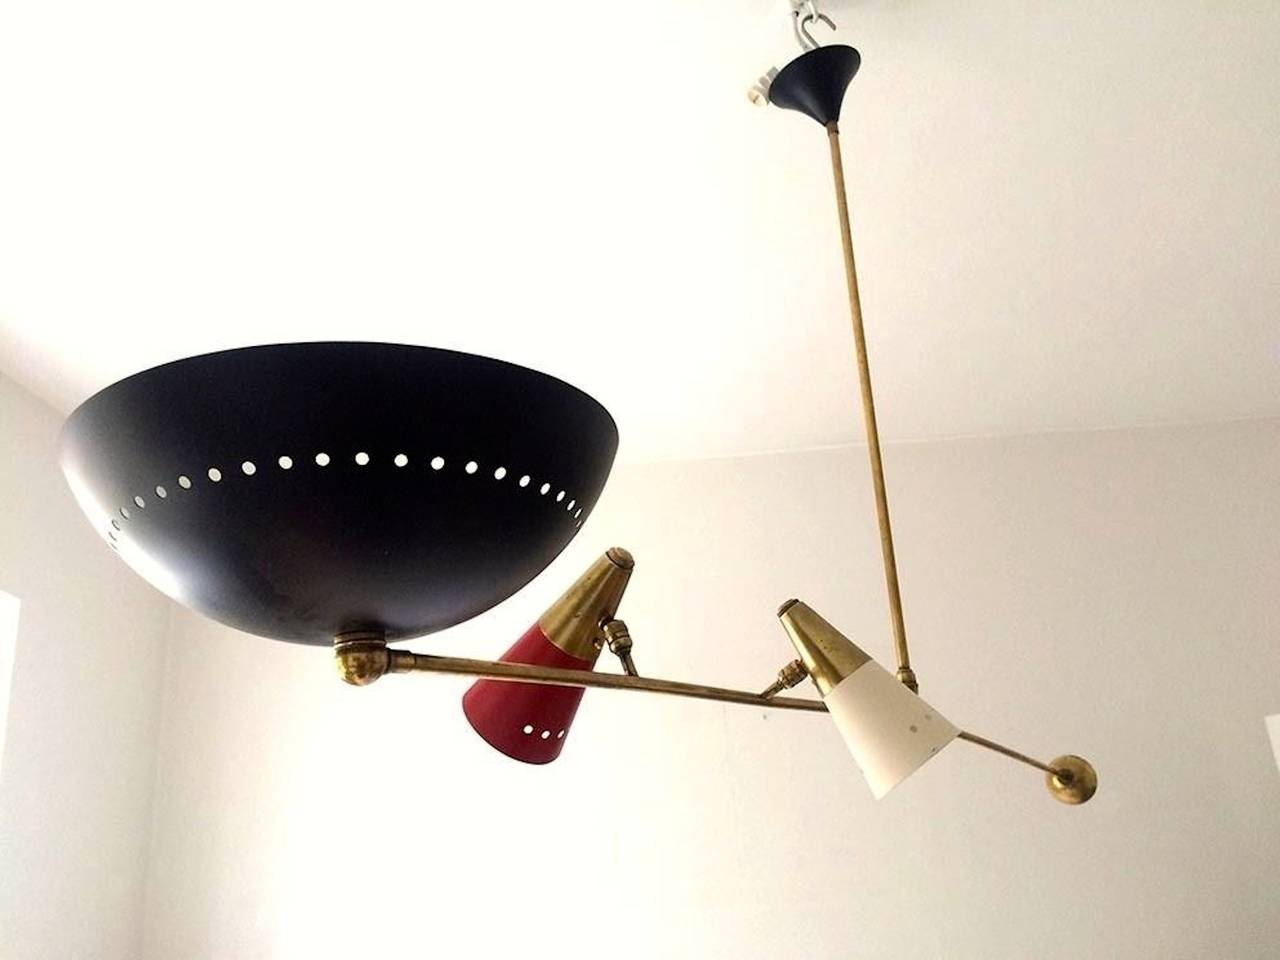 Minimalist and linear pivoting counter-balance pendant light one large black enameled dish reflector which faces up or down plus two articulating cones with brass caps and enameled white and red. Ceiling canopy enameled black. In the style of Angelo